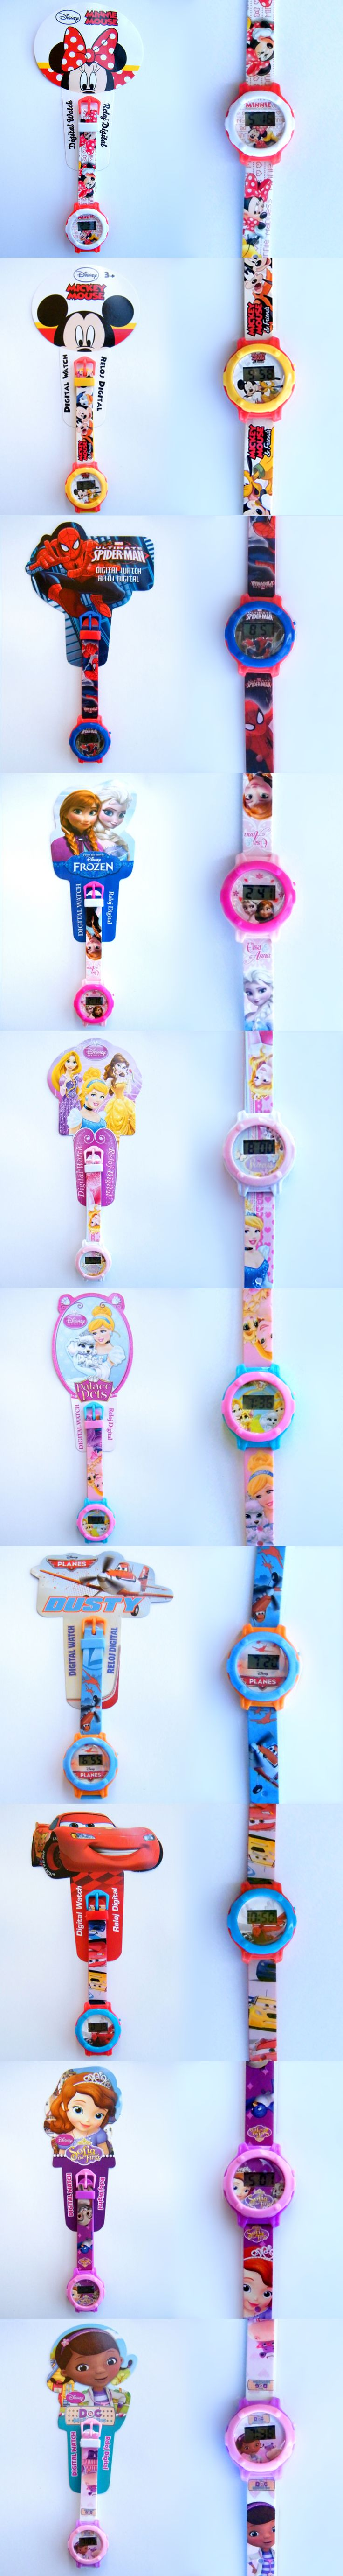 Original DISNEY watches for kids; Mickey, Minnie, Princesses, Cars, Spiderman, Sofia, Frozen - Elsa and Anna, Doc McStuffins; wristwaches; #watch #clock